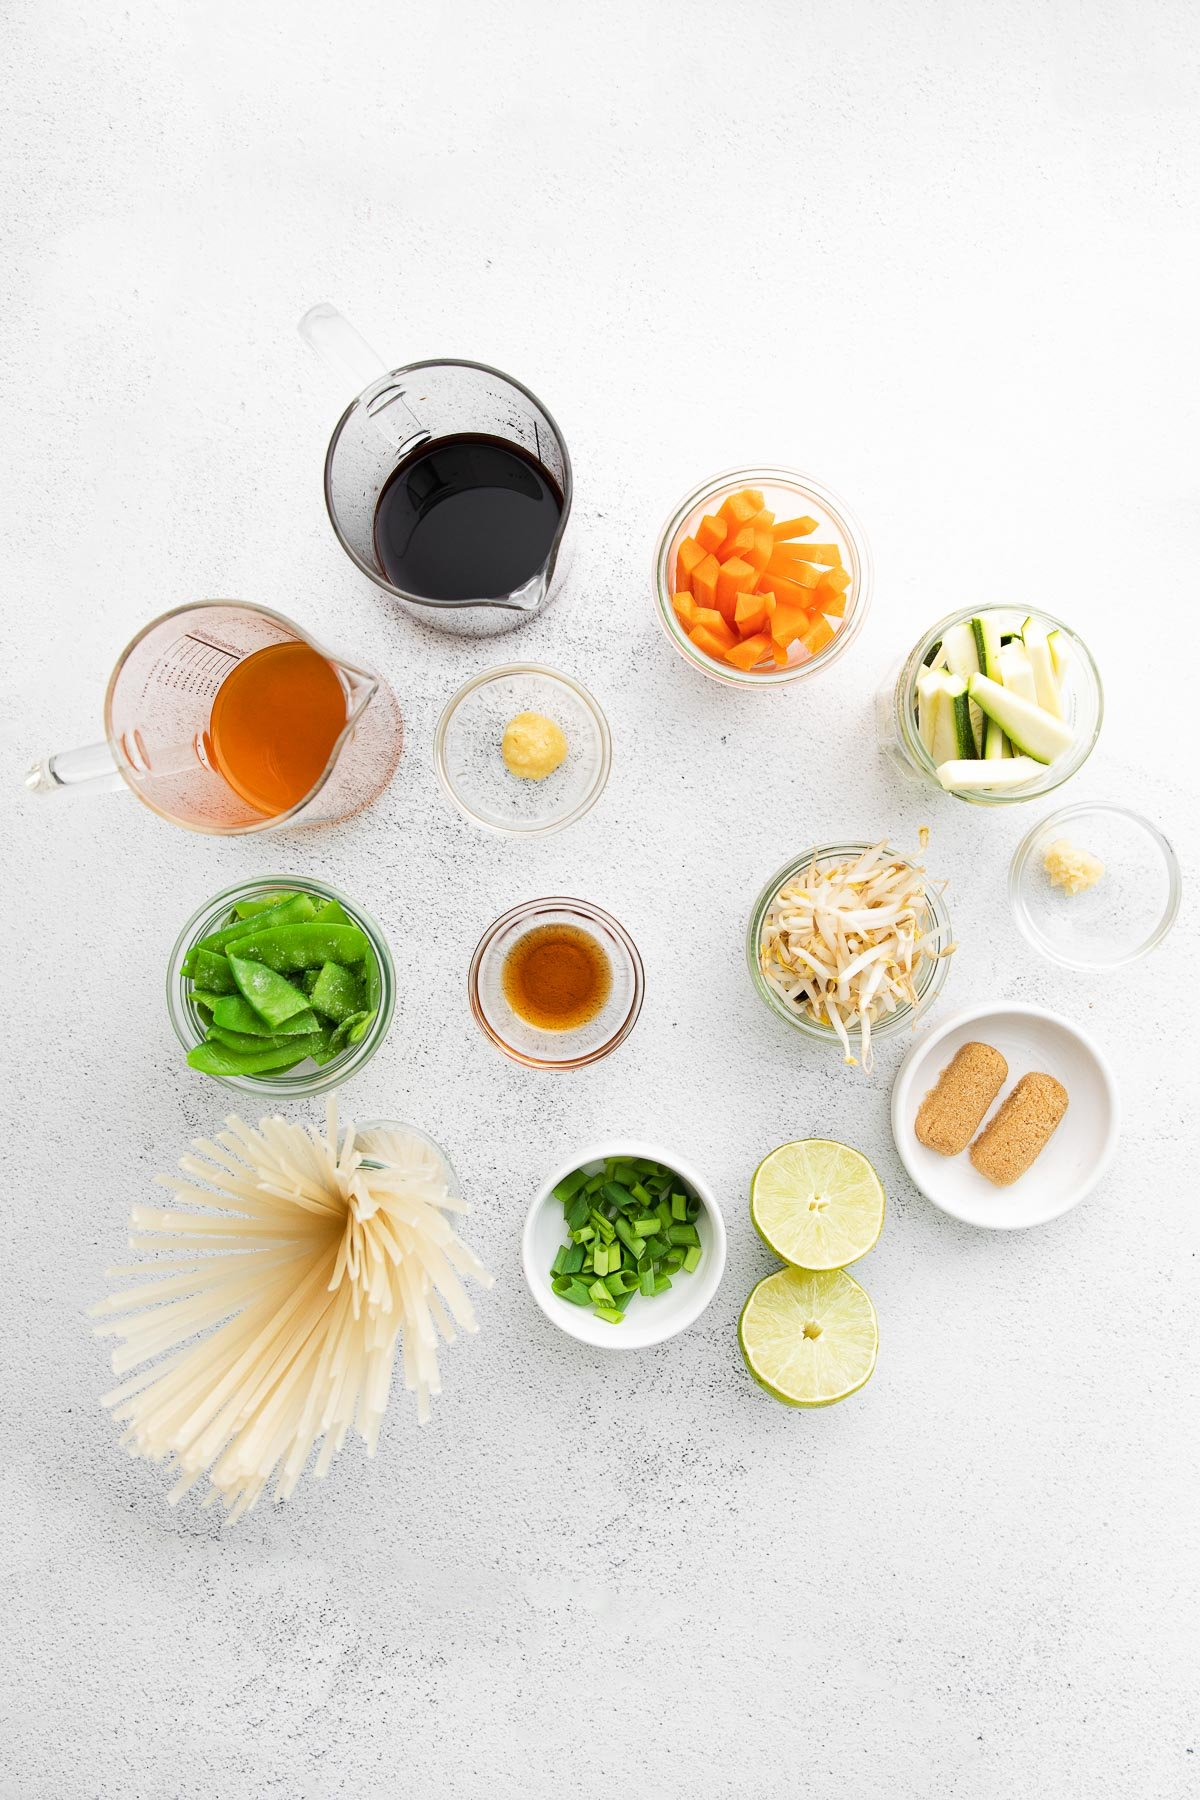 several glass bowls filled with ingredients for vegetable pad thai